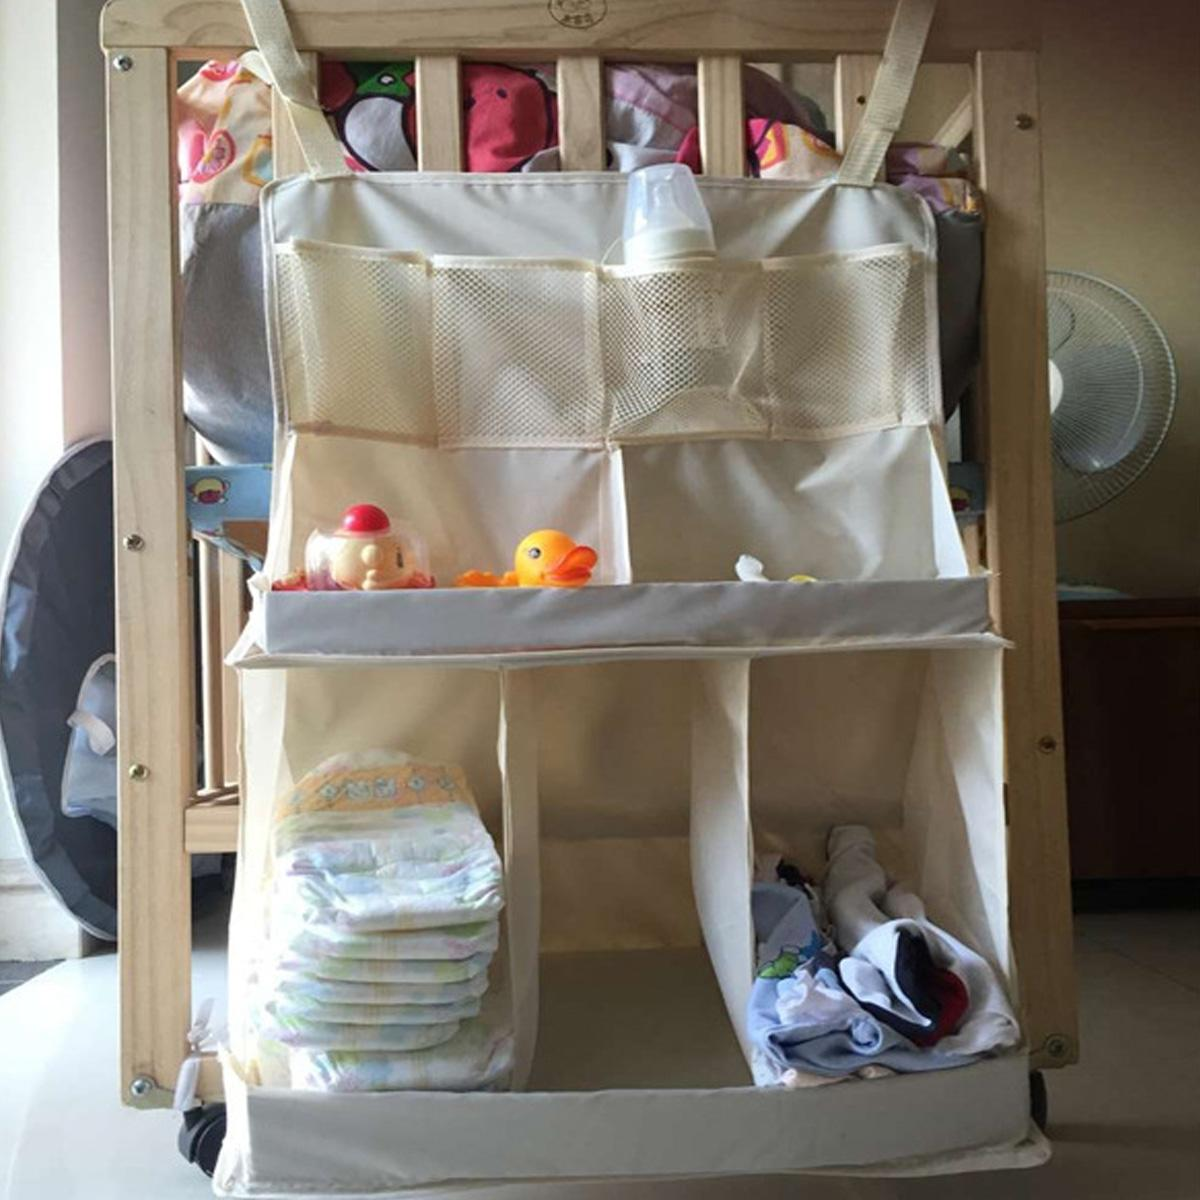 Baby Bed Hanging Organizer Bag Waterproof Baby Diapers Clothes Feeding Bottle Toys AccessoriesOrganizer Bag For Crib Bed